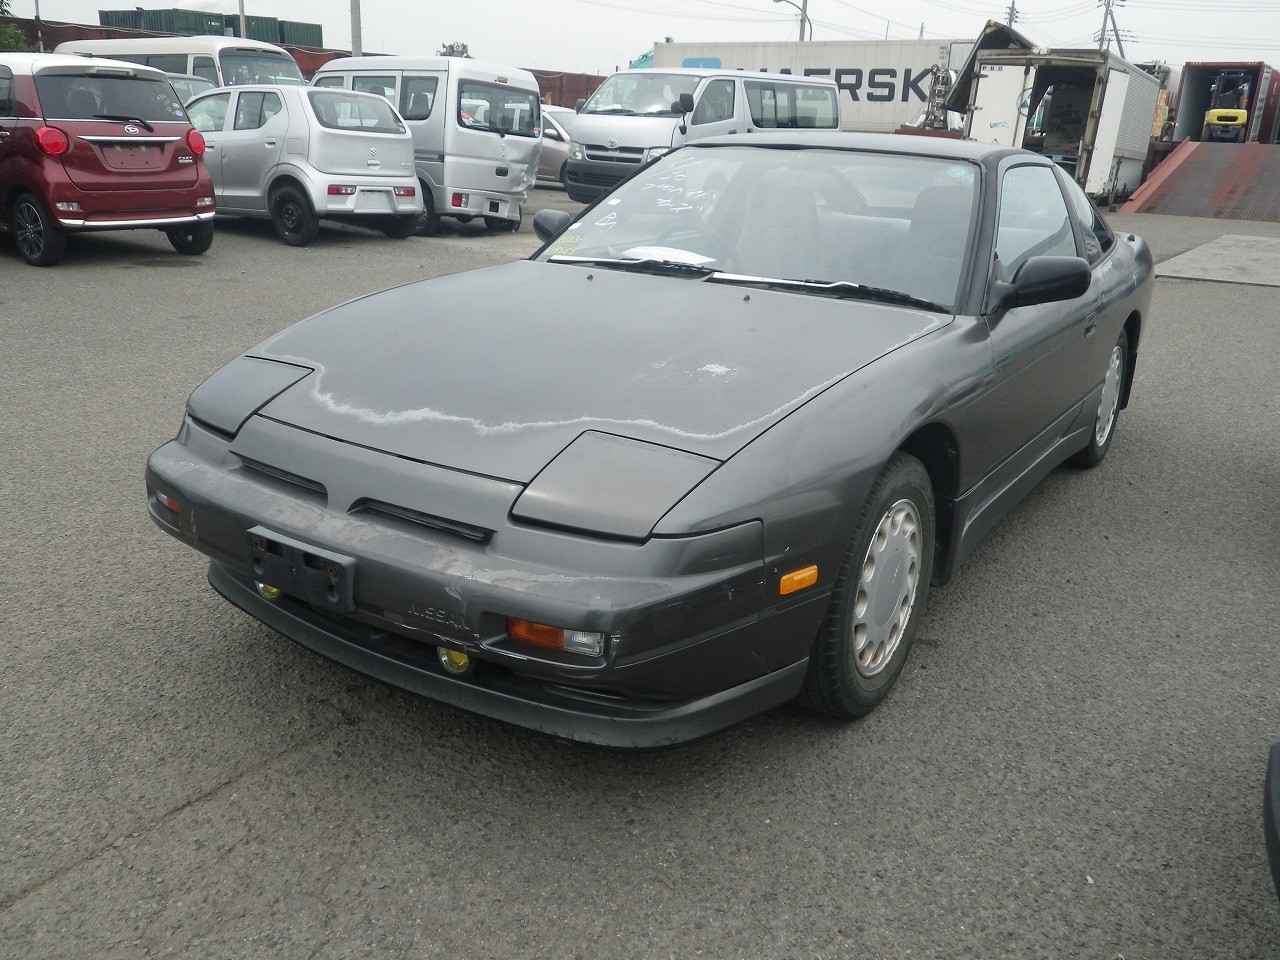 1990 Nissan 180sx CA18det Hatchback 5 Speed Manual Turbo